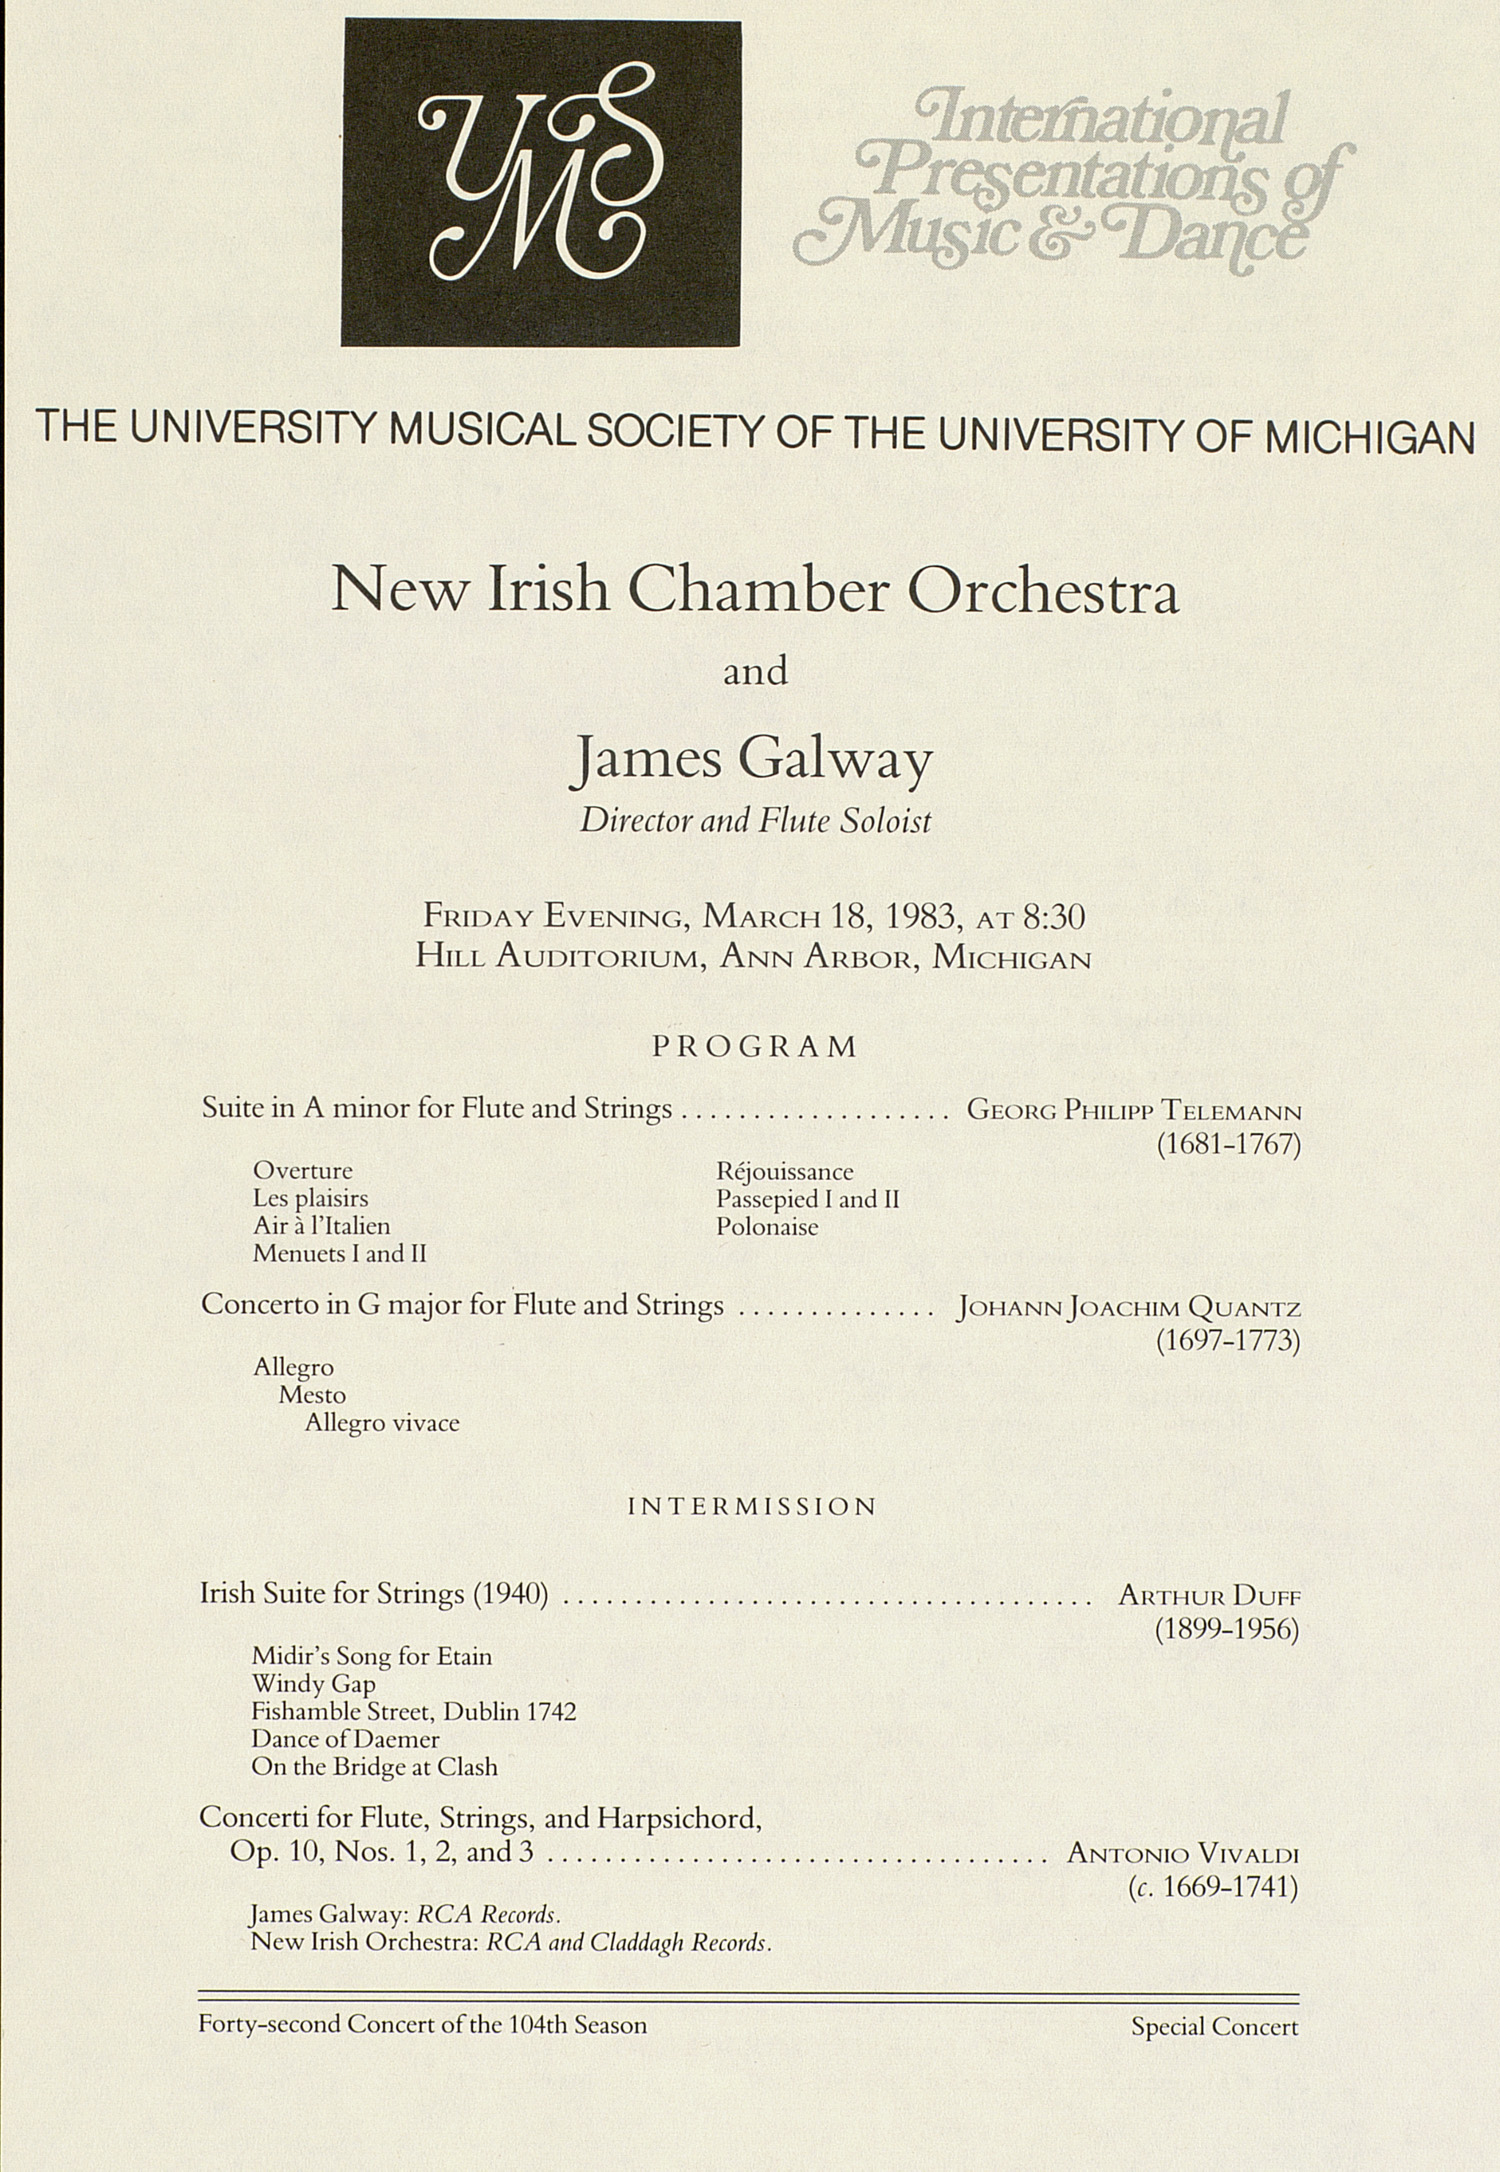 UMS Concert Program, March 18, 1983: International Presentations Of Music & Dance -- New Irish Chamber Orchestra image